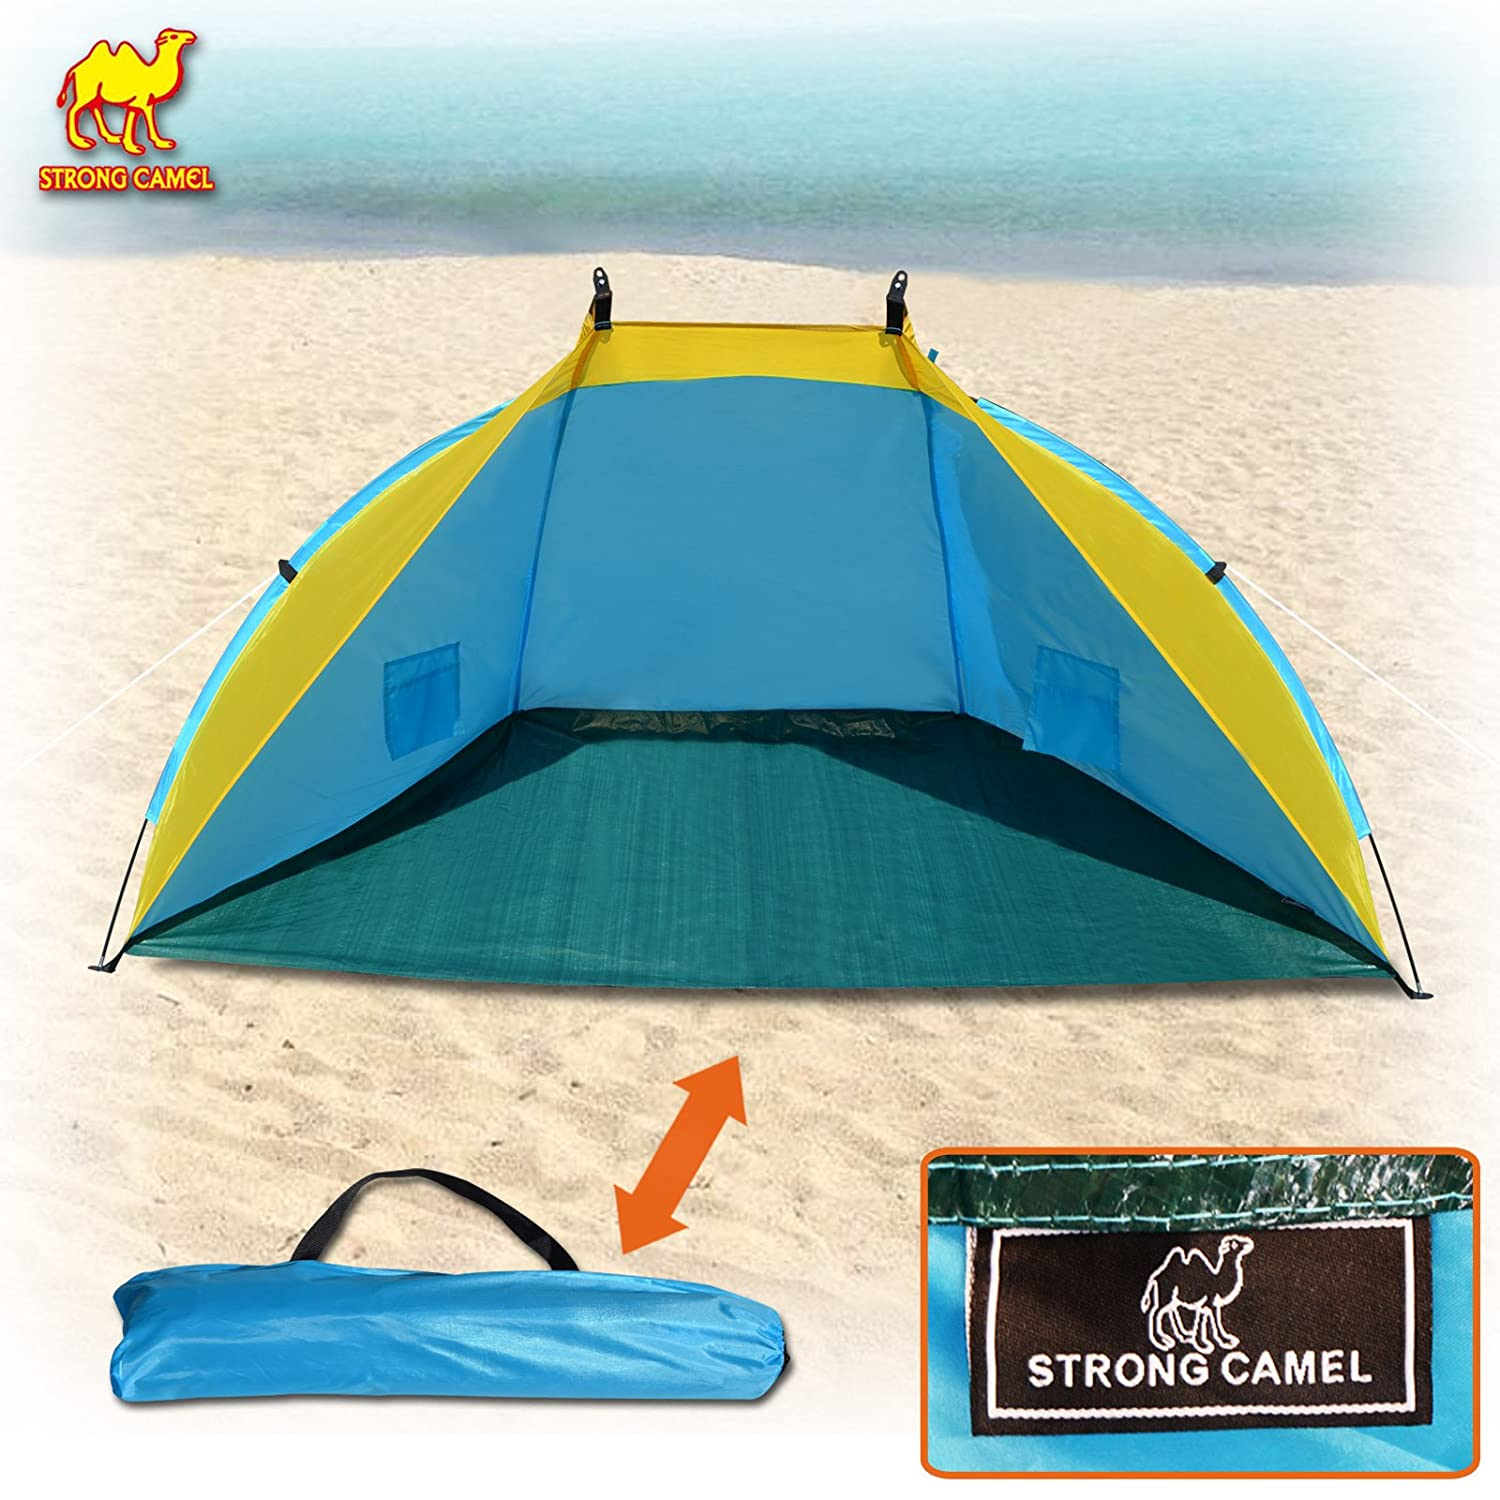 aefe62ca0c8d Amazon.com  Strong Camel Outdoor Fishing Beach Tent Canopy Camping Hiking  Picnic Sunshade Shelter Sport Sun Shelter (dark blue)  Sports   Outdoors